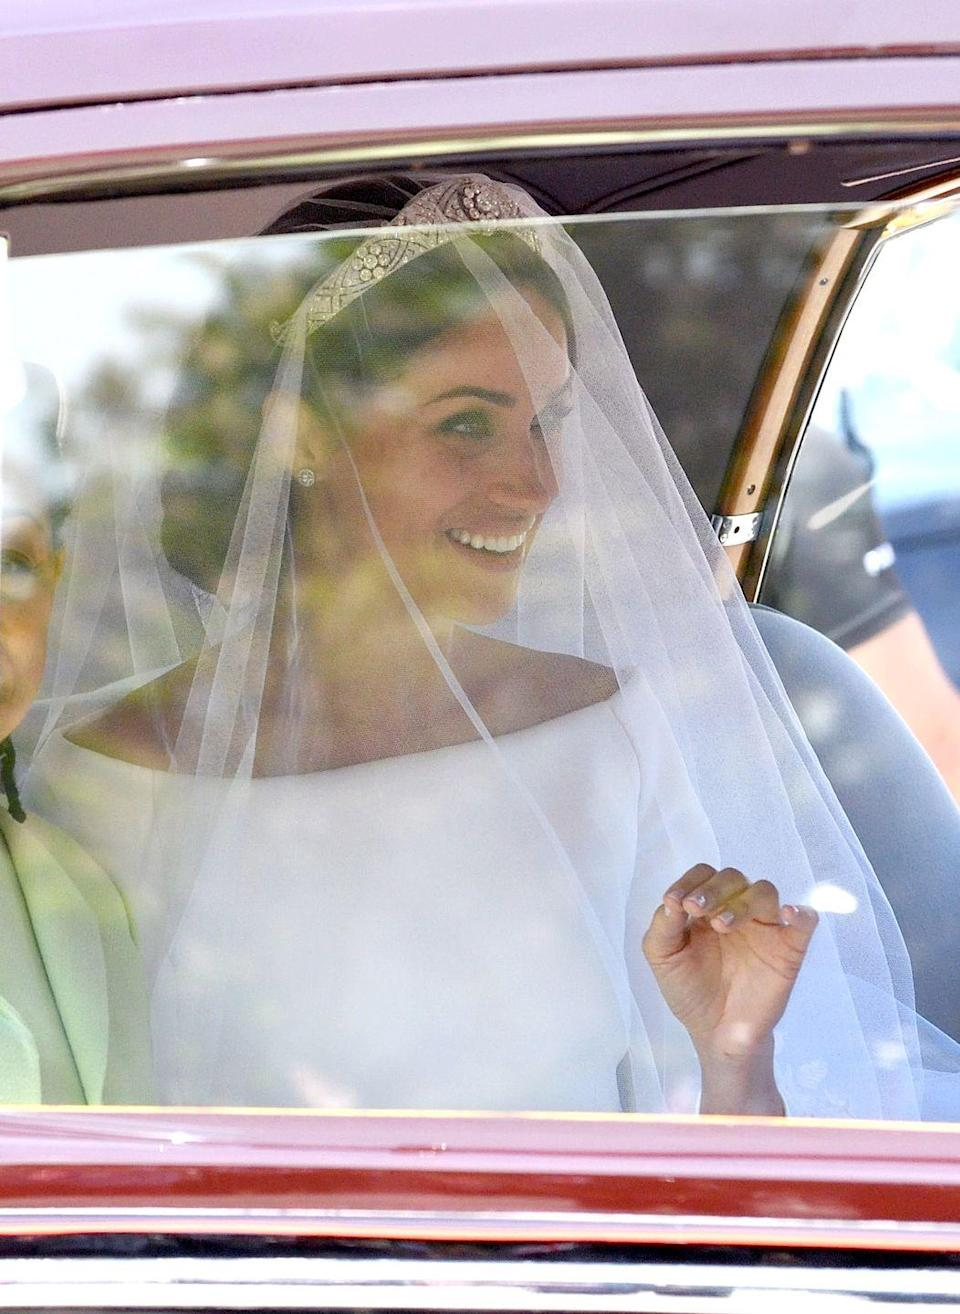 <p>The jewels from her tiara are still blinding me!</p>